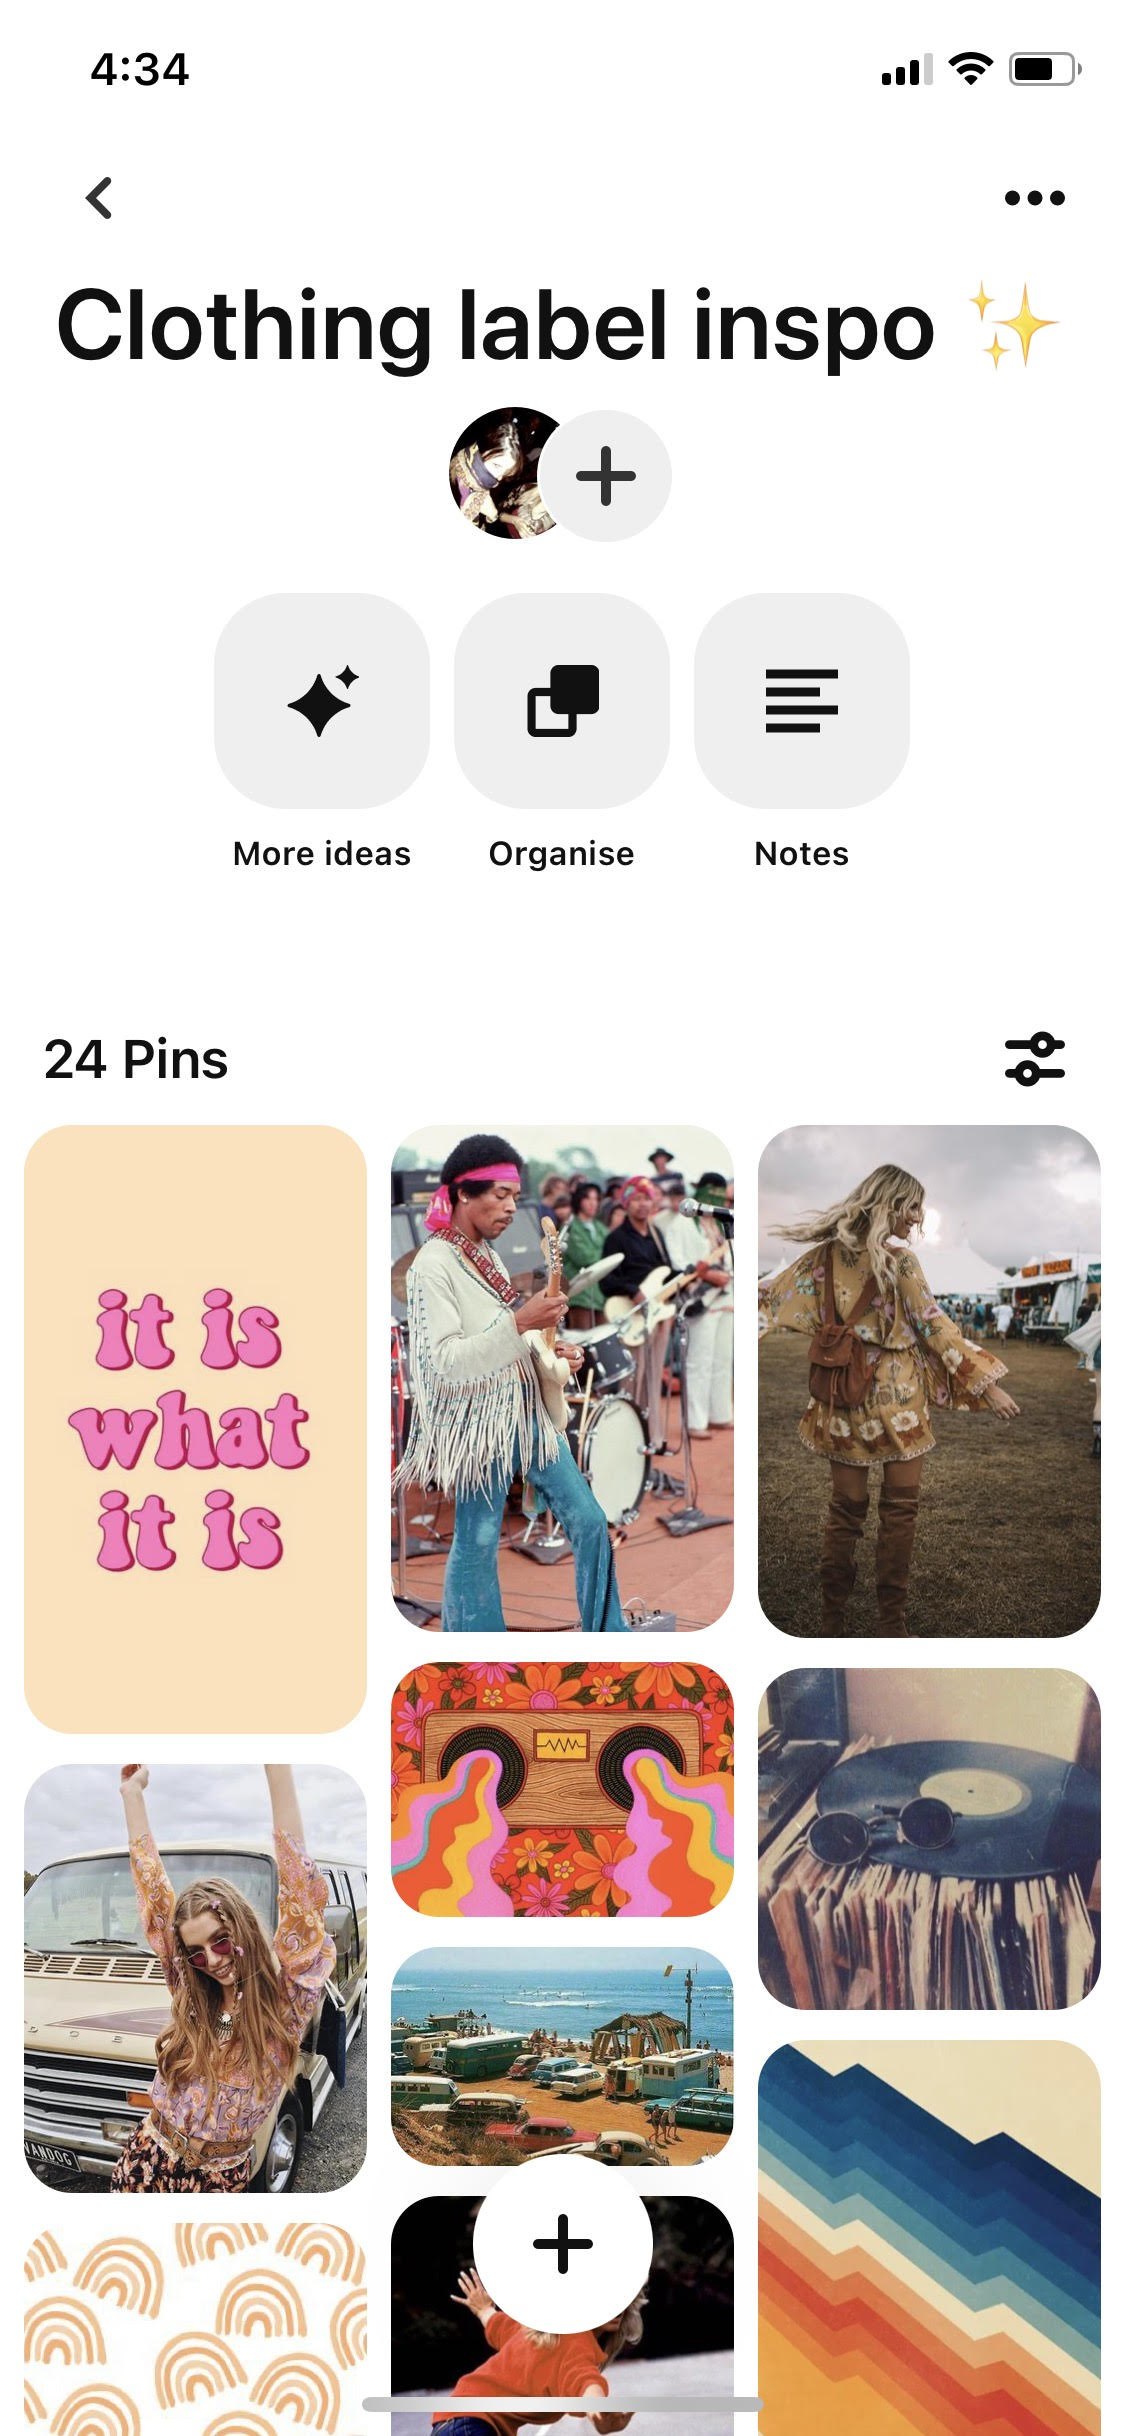 Pinterest for your brand